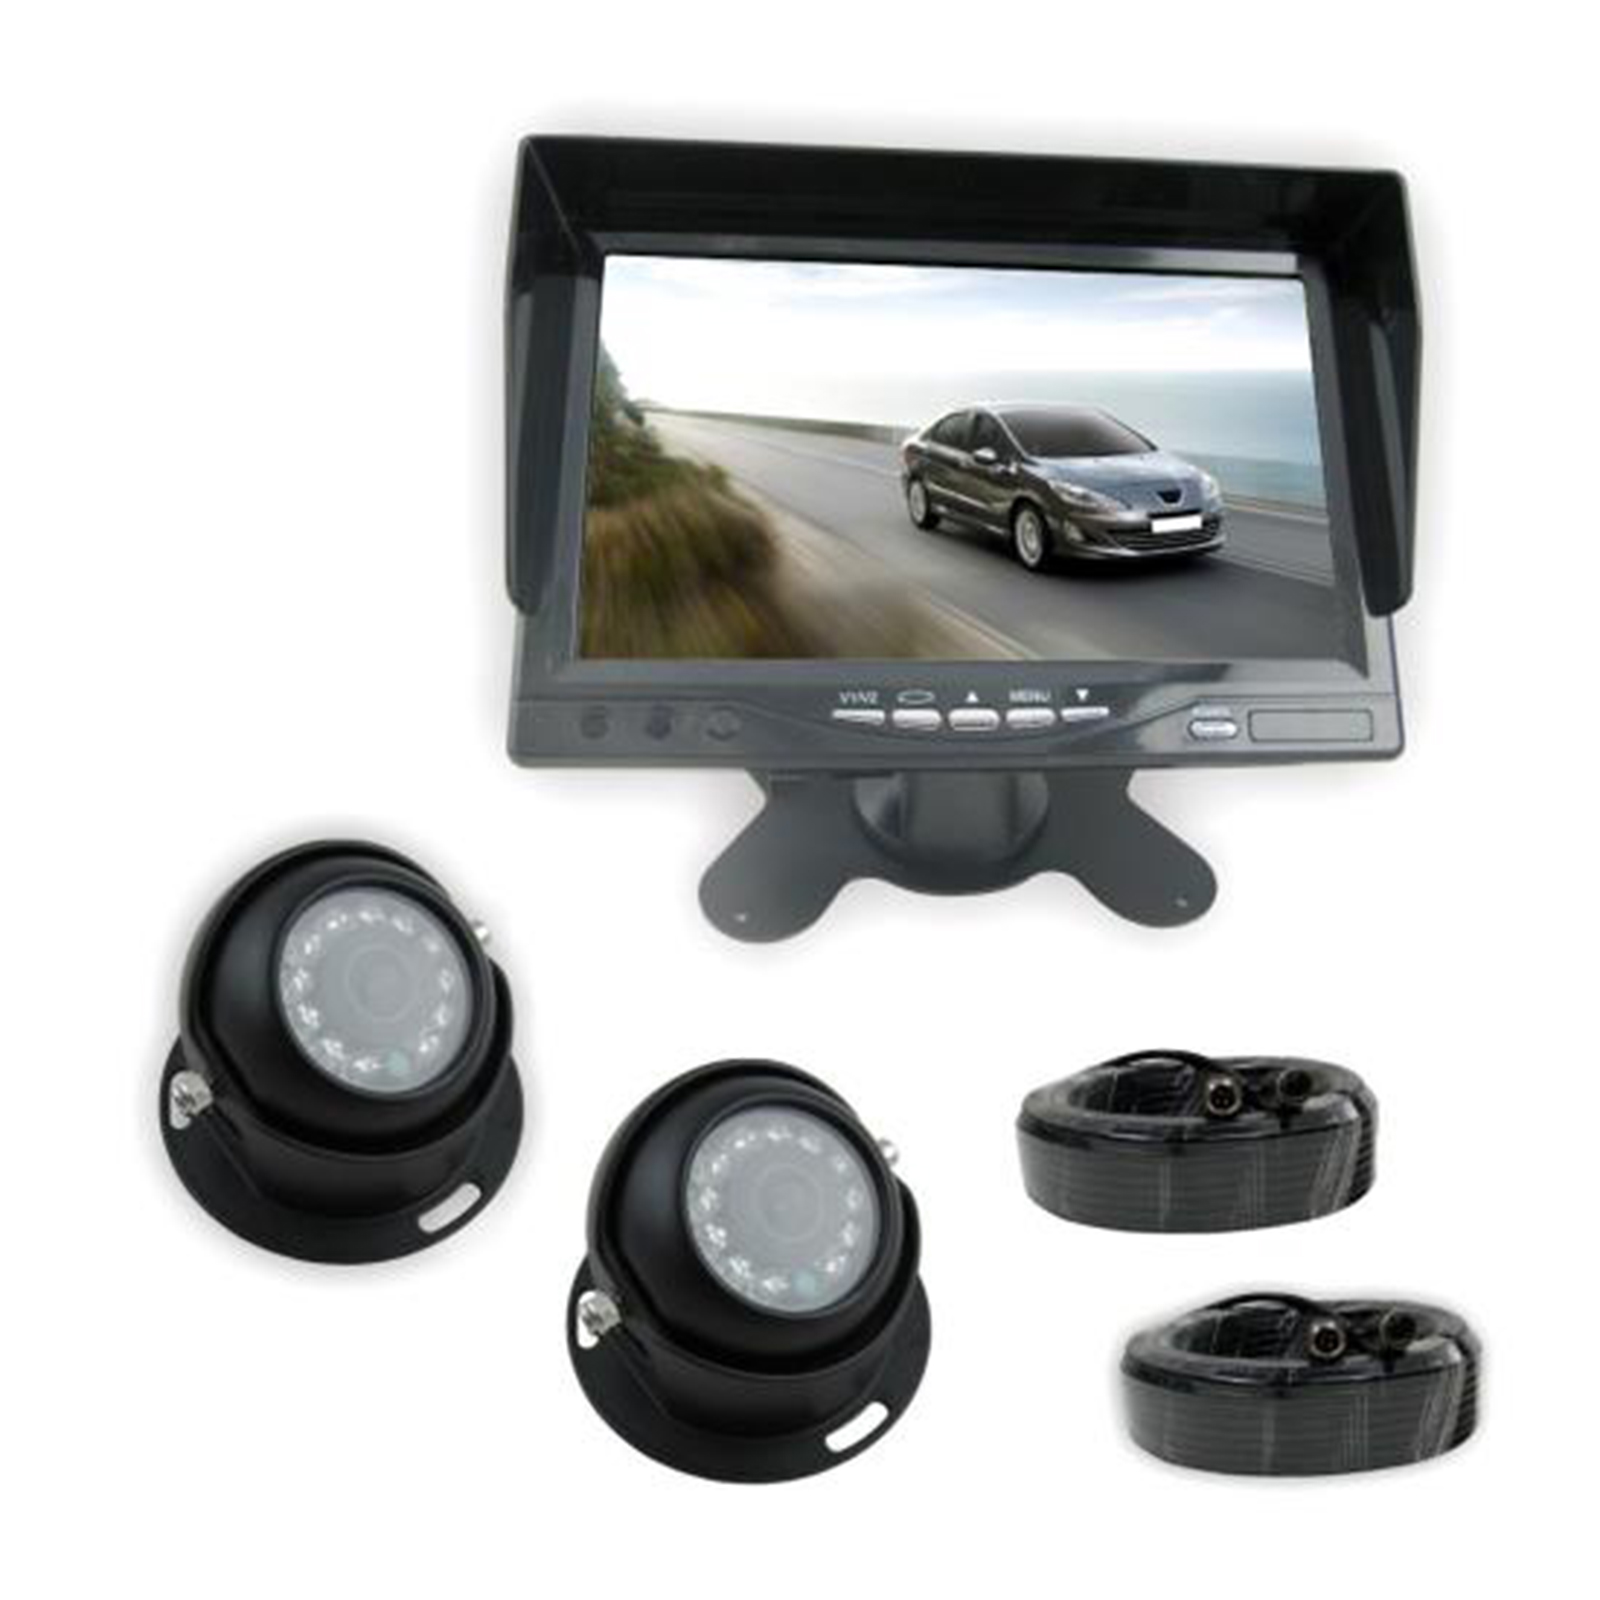 "Rear View Backup Camera & Monitor System Kit, 7"" Display, (2) Waterproof Angle Adjustable Night Vis Cams, Front/Rear Vehicle Mount"